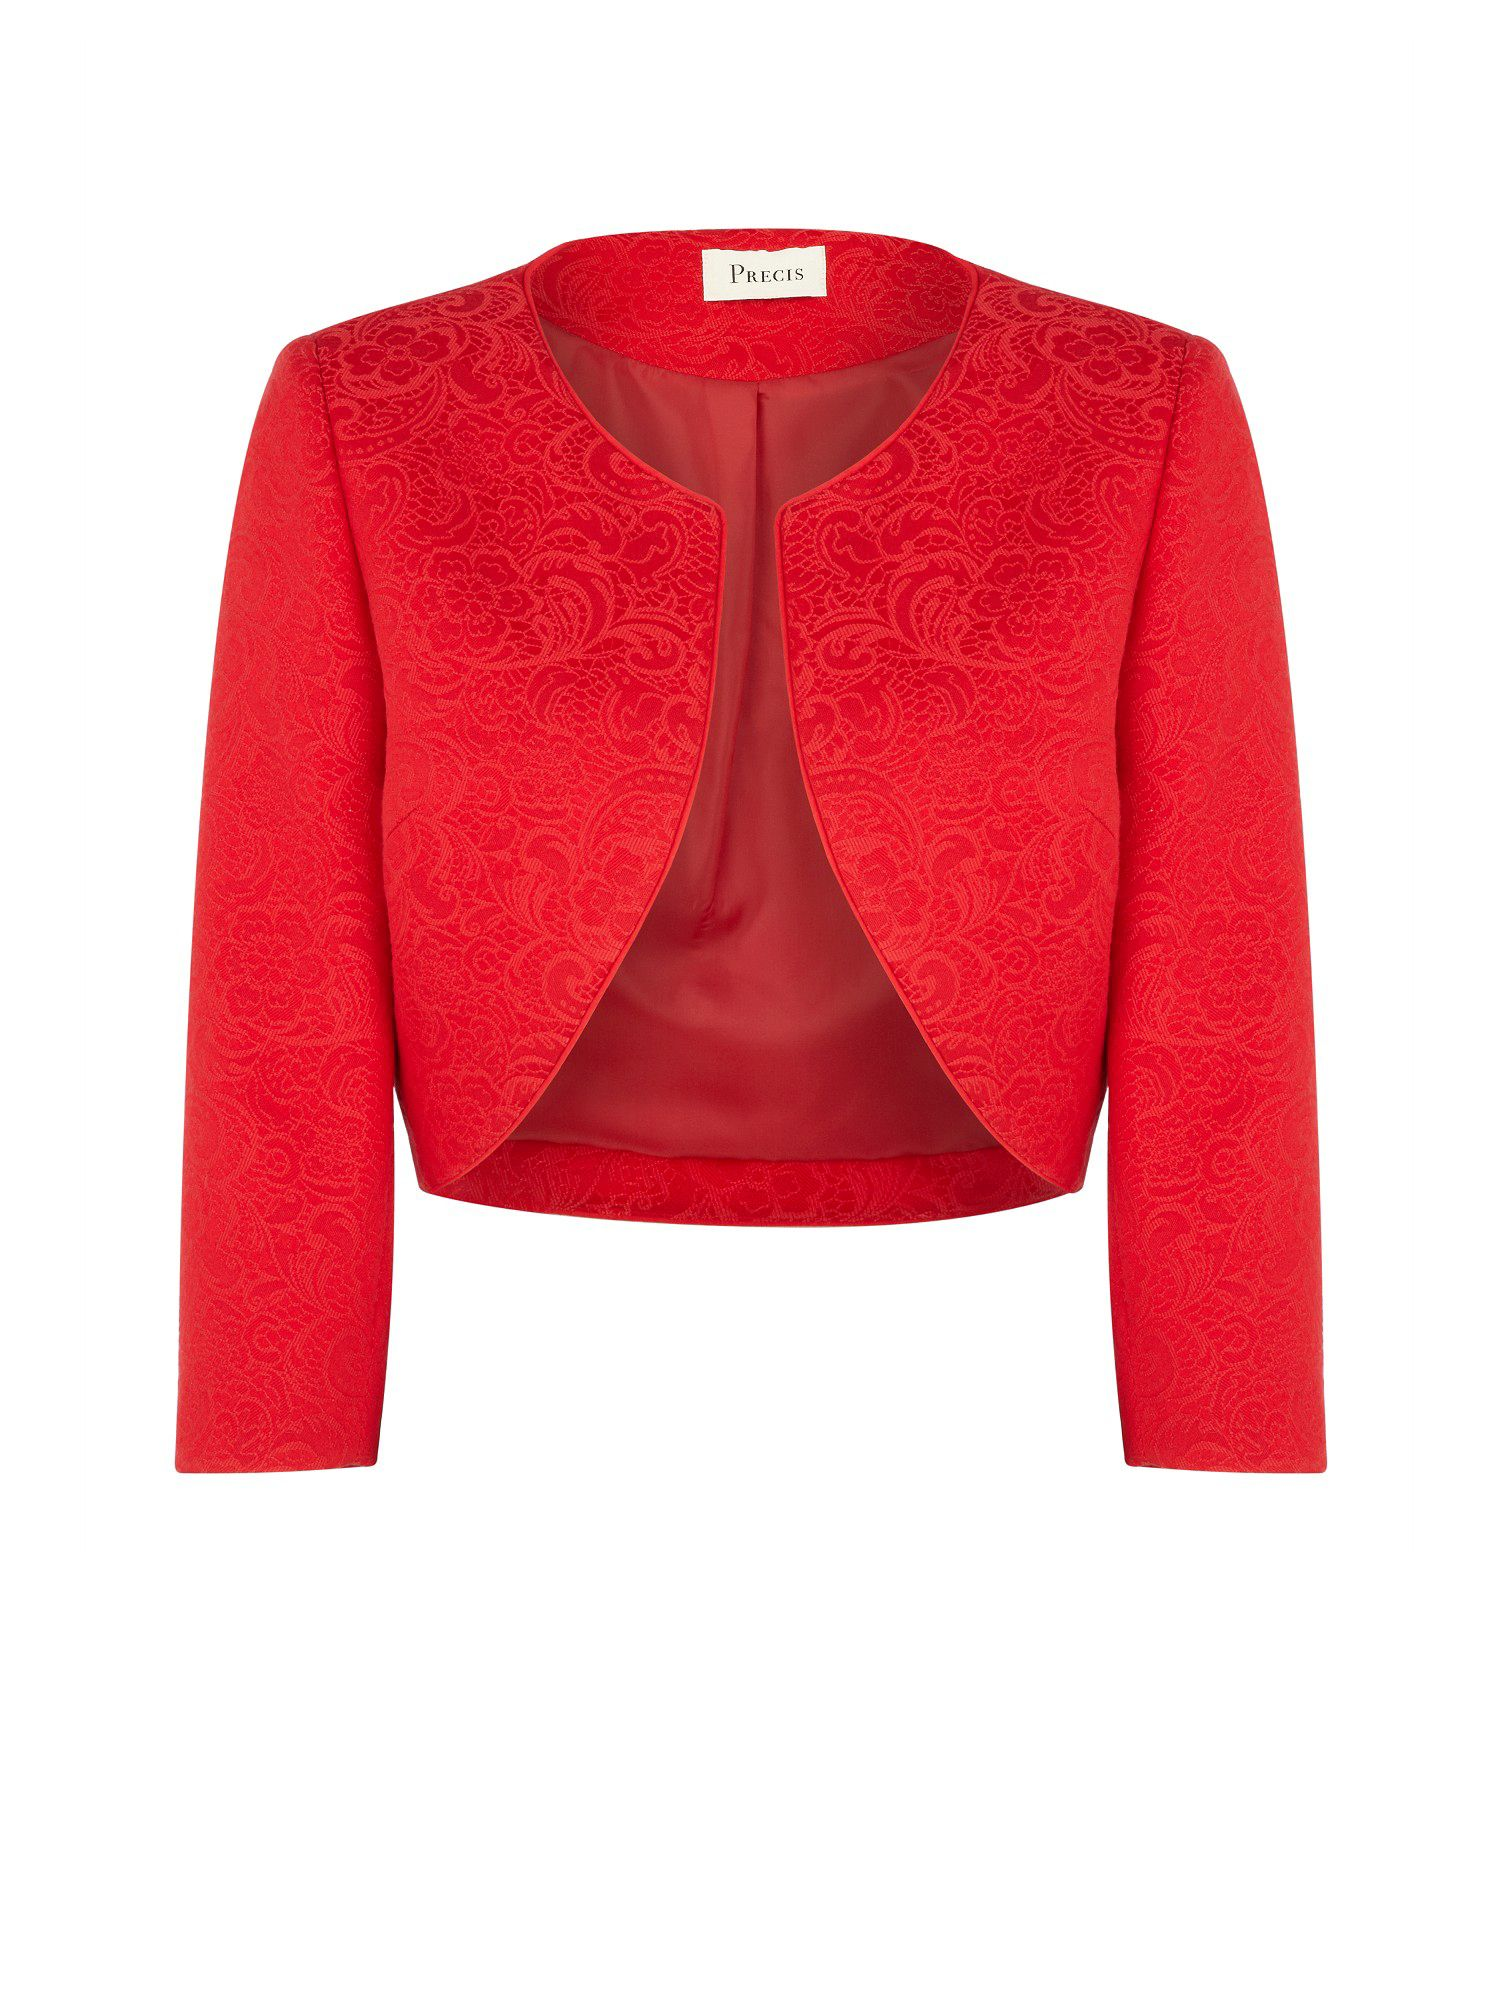 Poppy red lace jacquard bolero